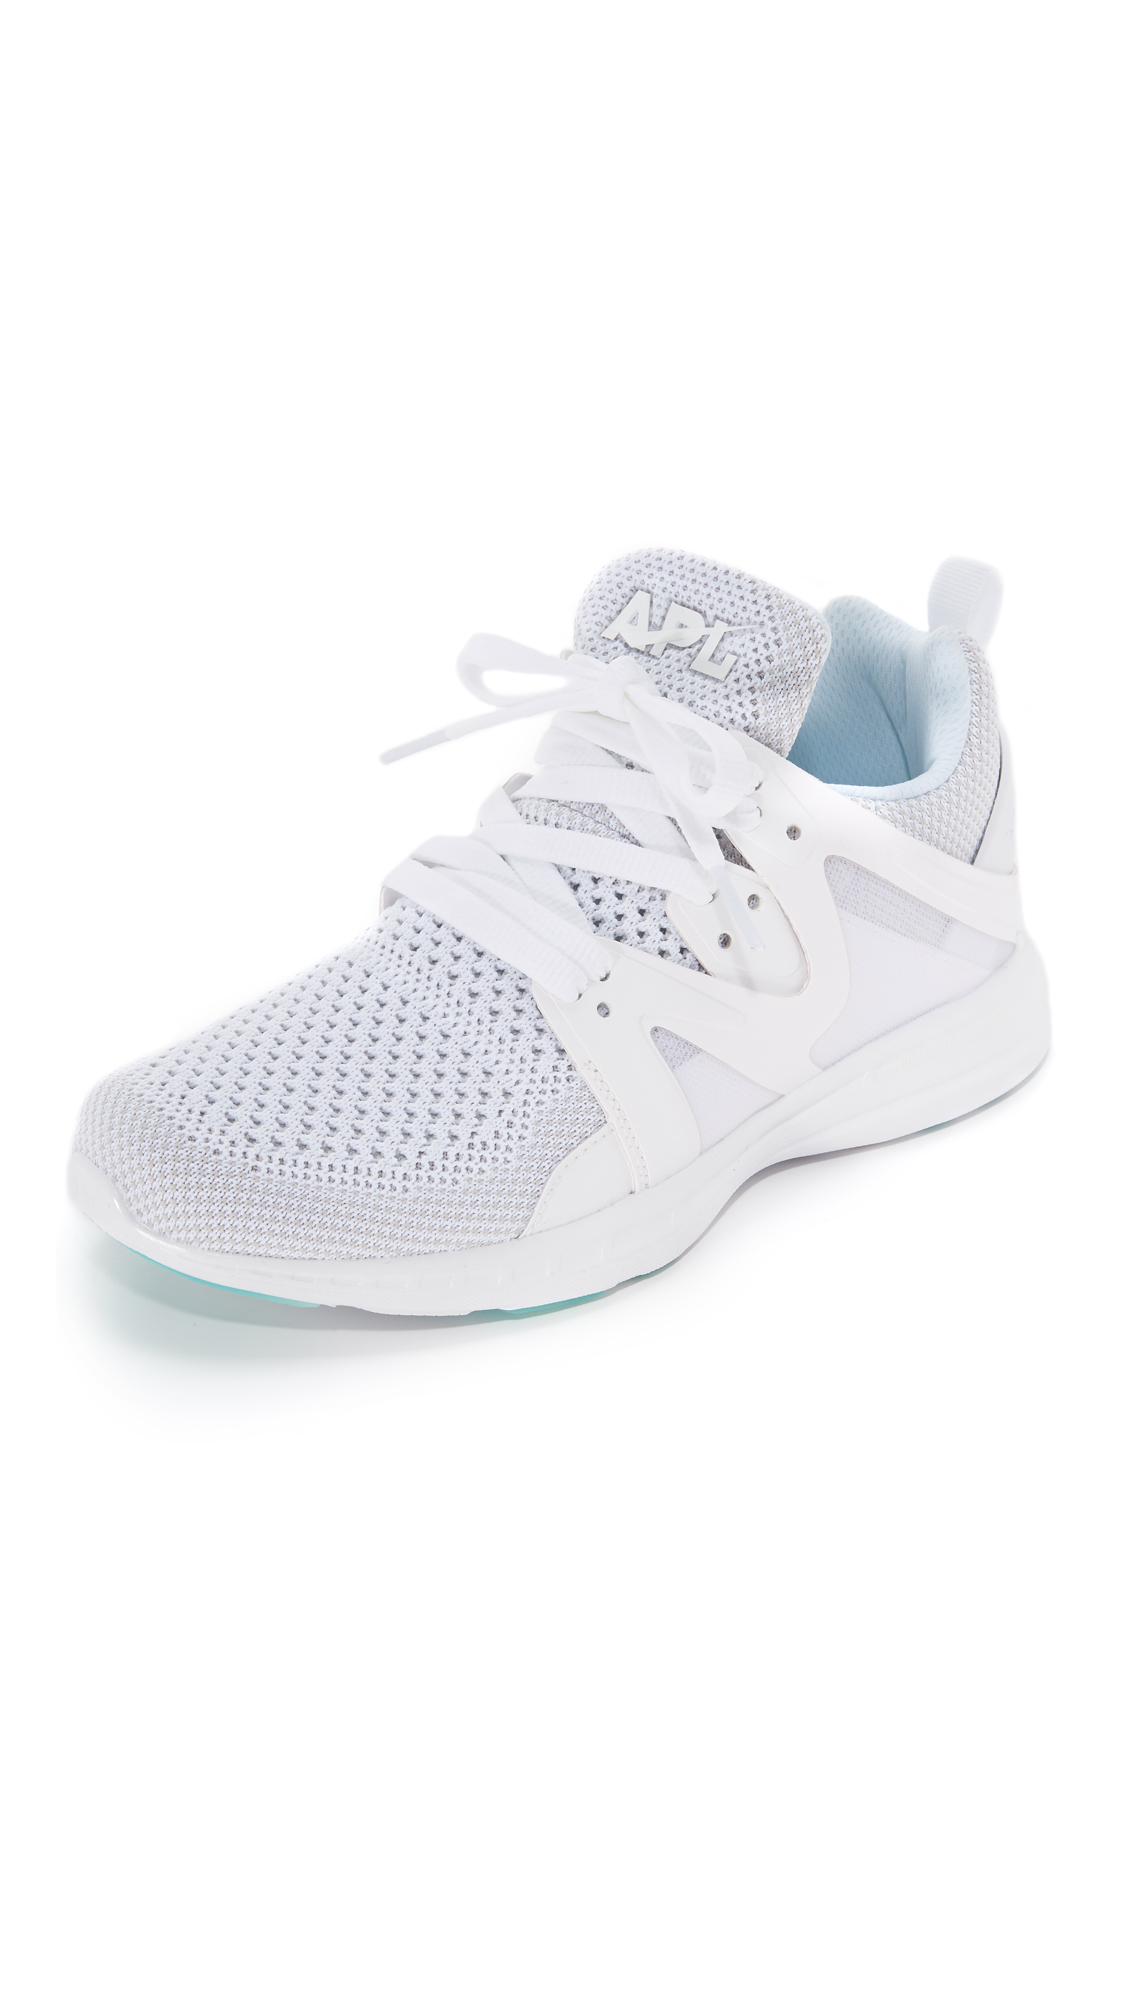 apl athletic propulsion labs female apl athletic propulsion labs ascend sneakers white